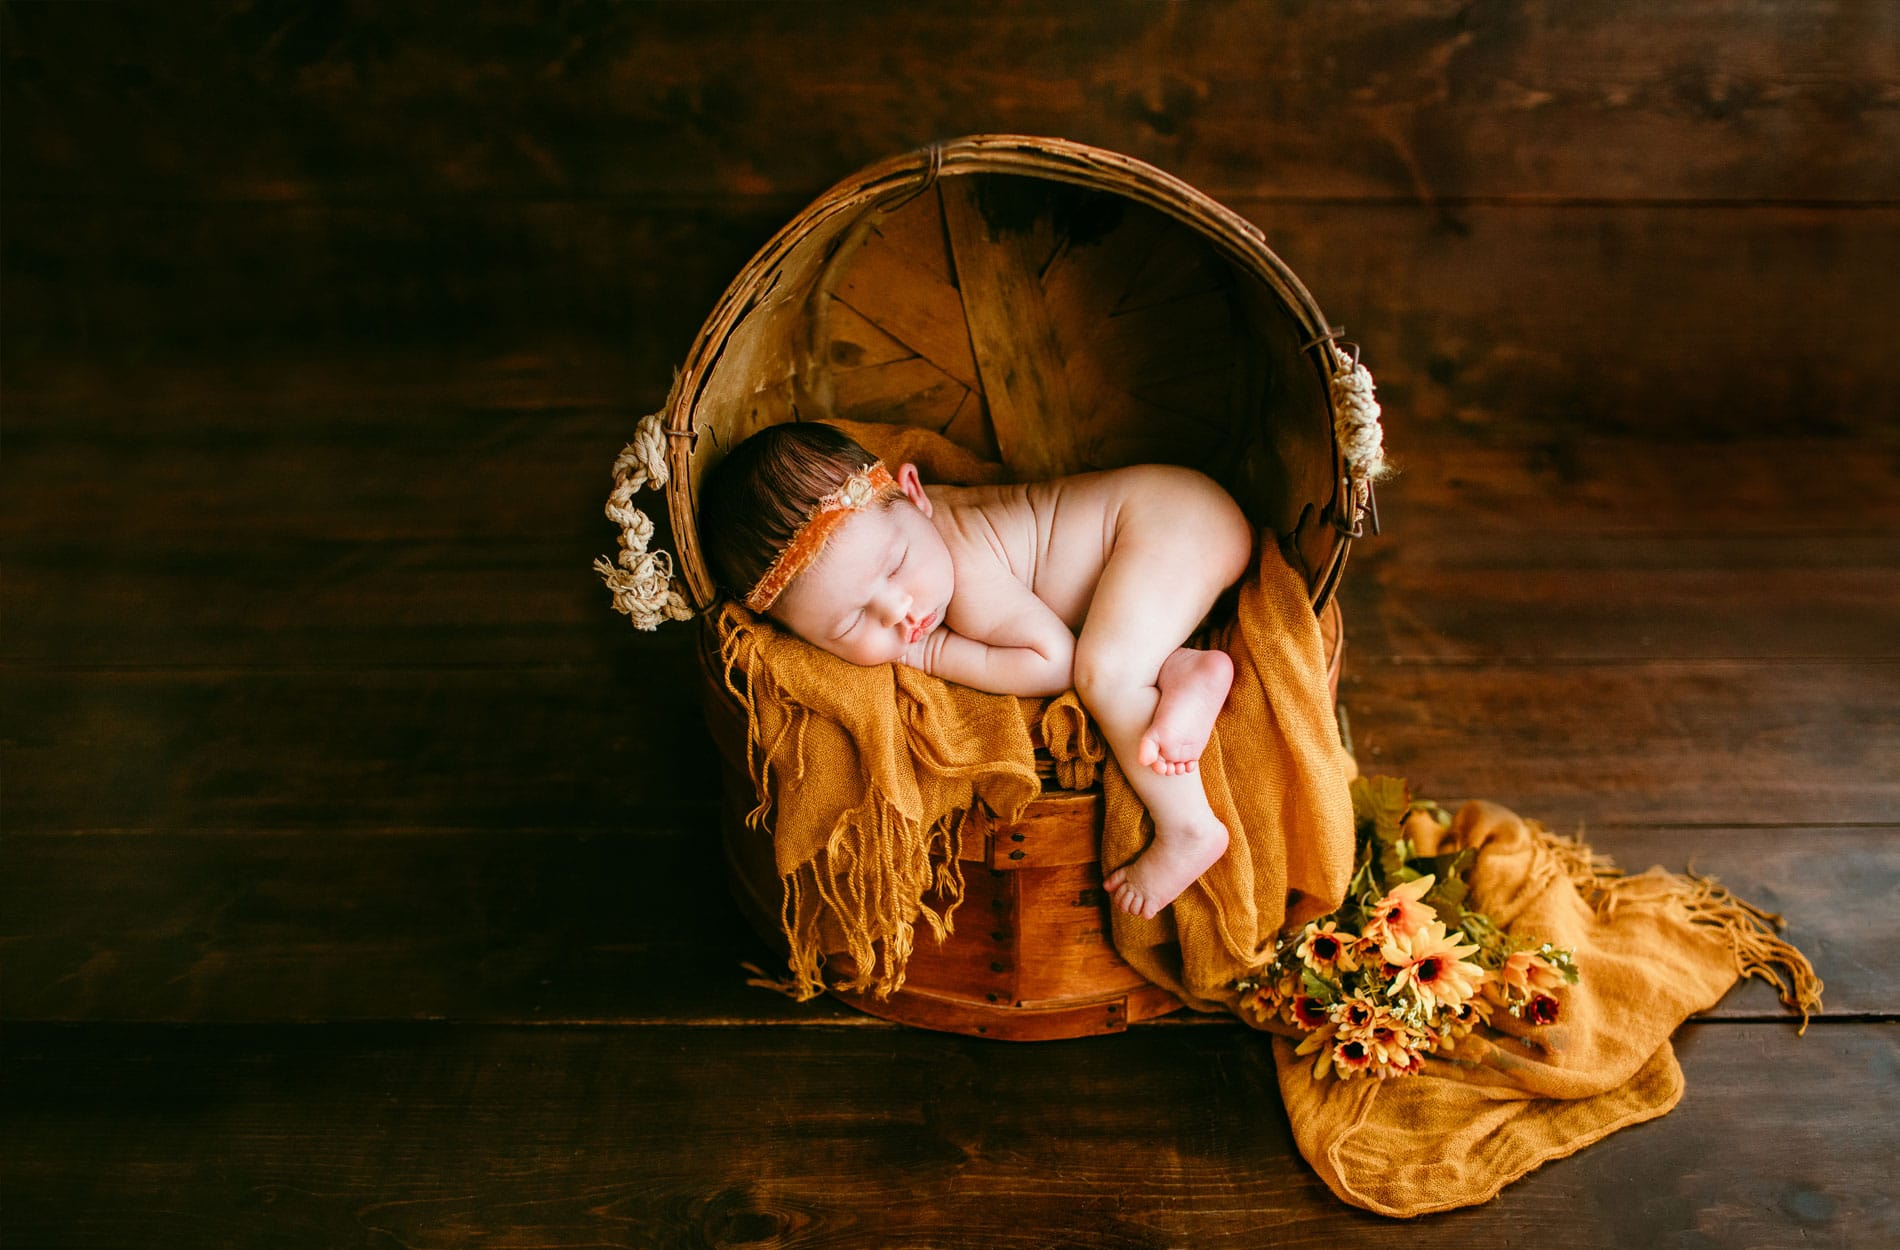 Newborn Photography, baby asleep on a yell blanket in a basket chair